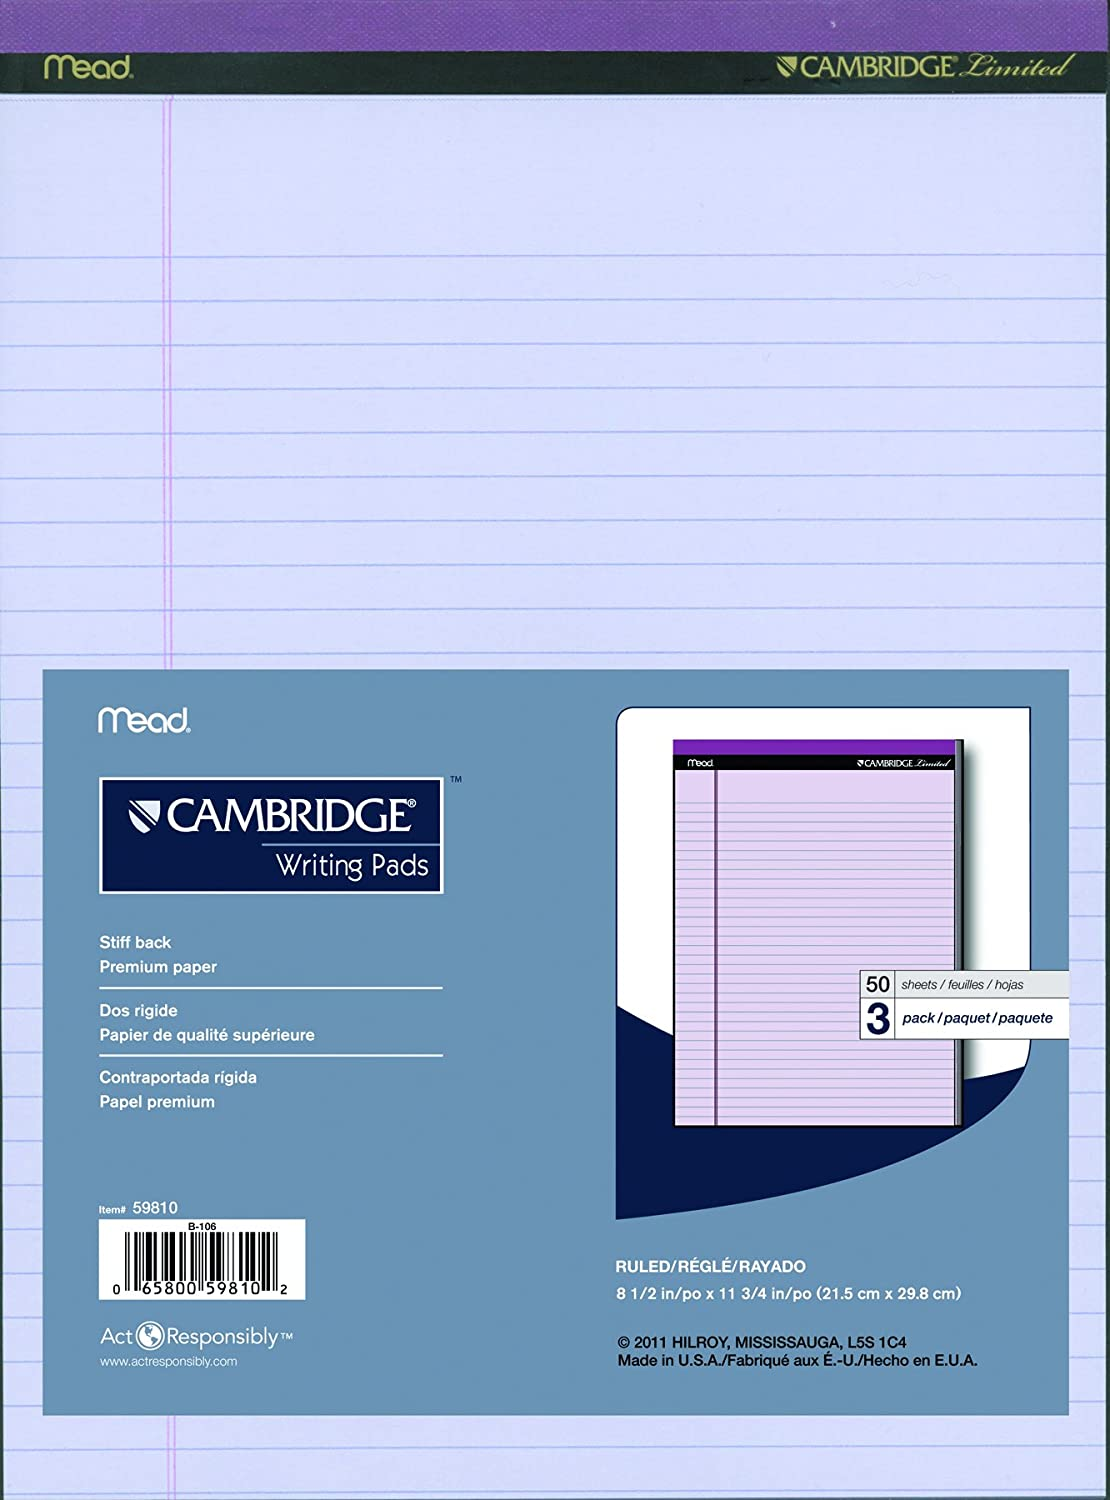 Cambridge Limited Perforated Writing Pad, 8.5 X 11 Inches, Wide Ruled, 50 Sheets, Ivory, 3/pack (59804) Ivory